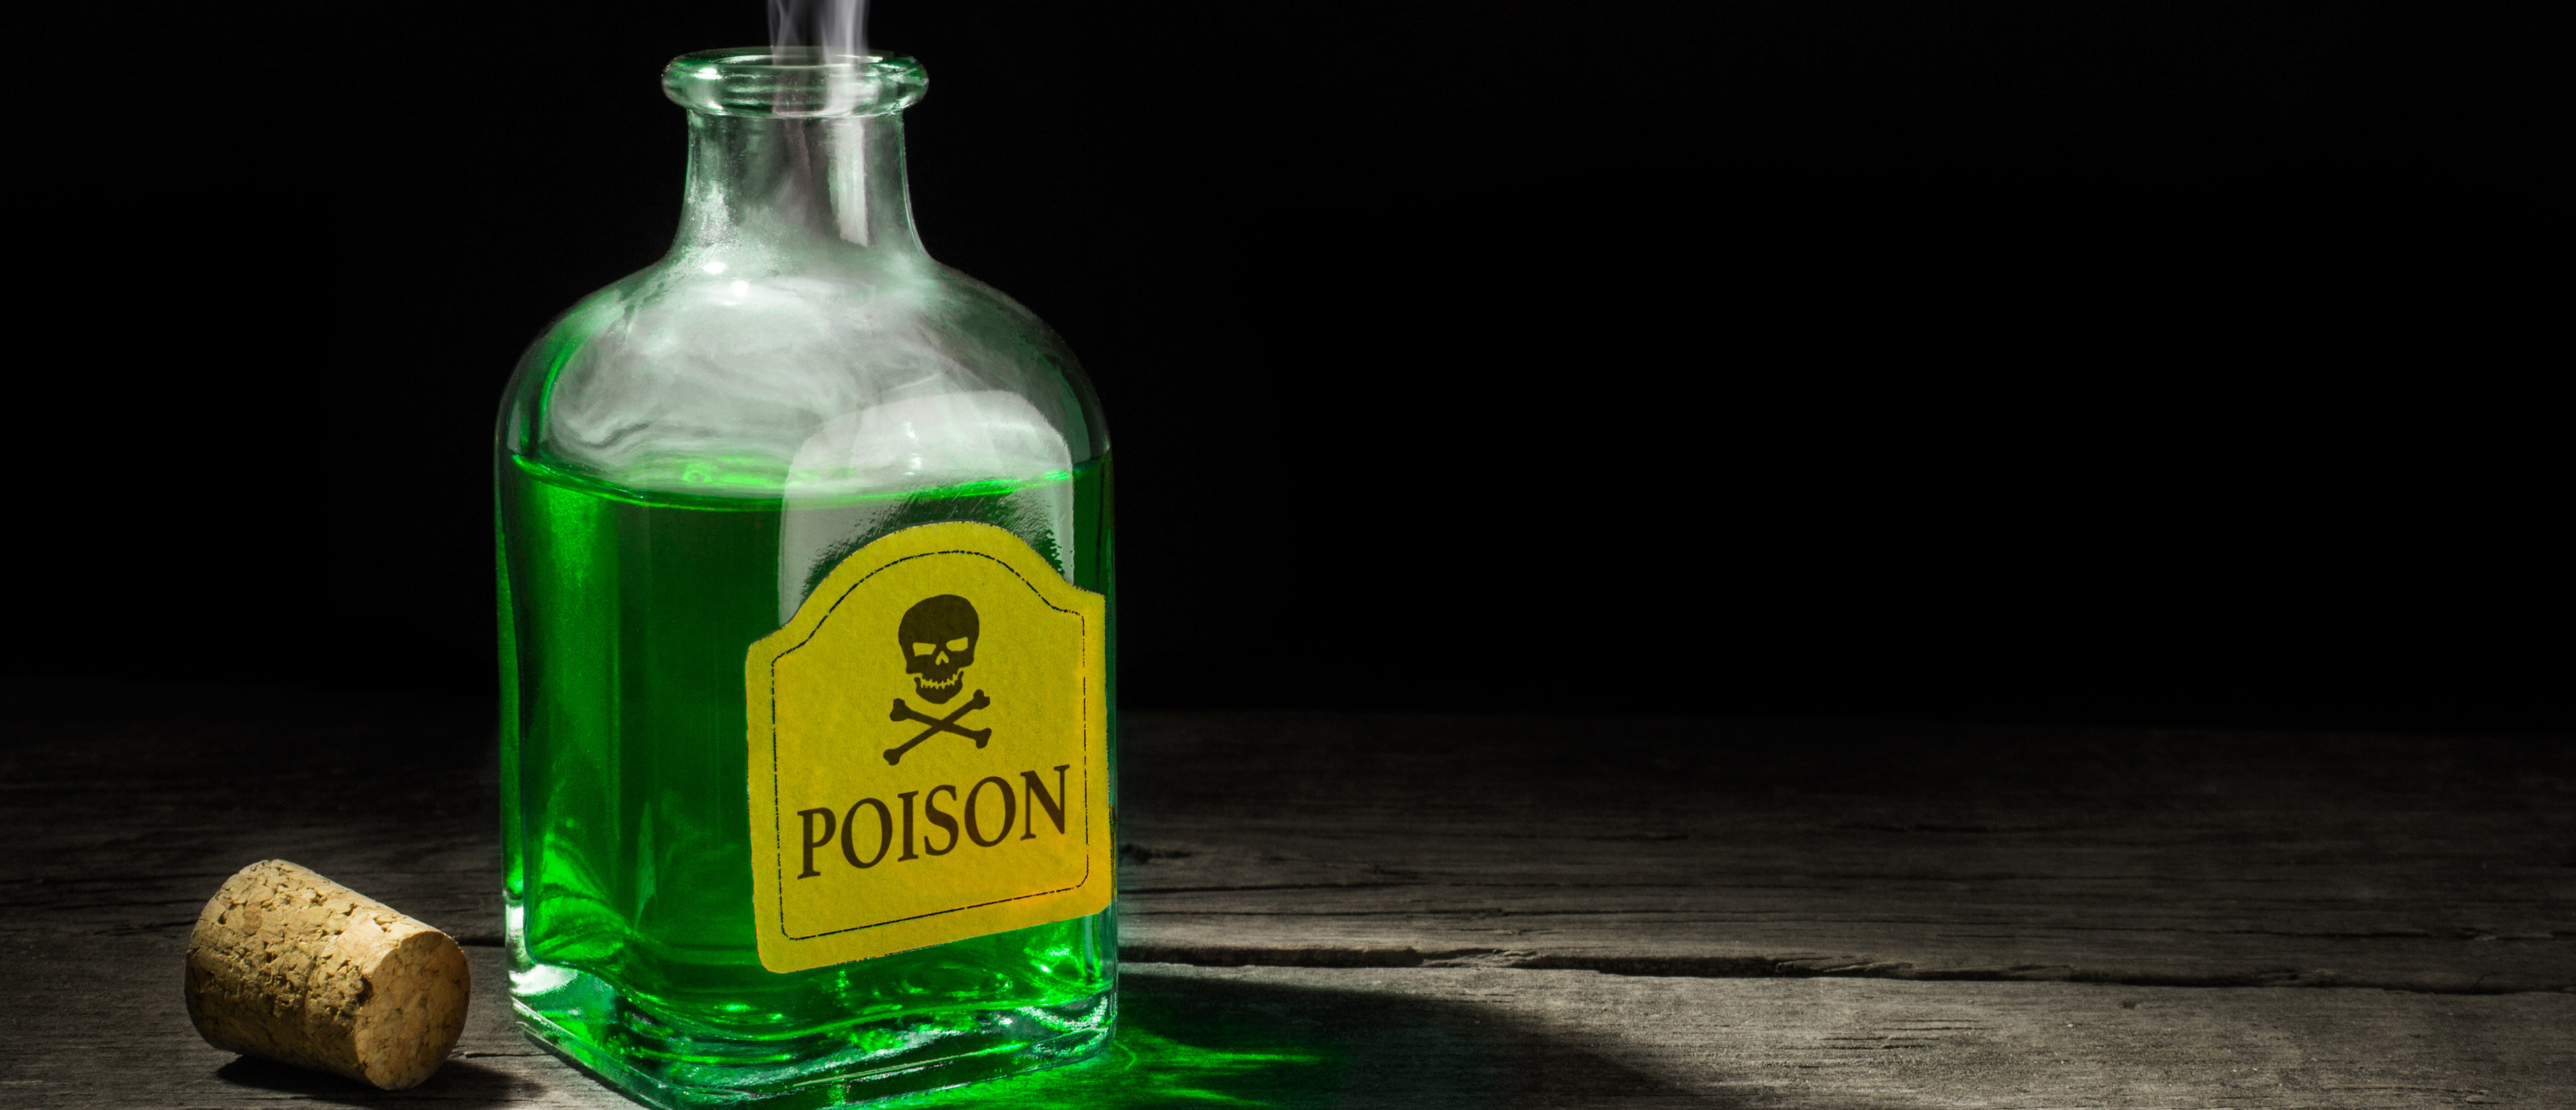 The co-owner of an Arizona newspaper used the publication to levy allegations against his wife, accusing her of poisoning him and failing to report her side of the story. (Shutterstock/ADragan)